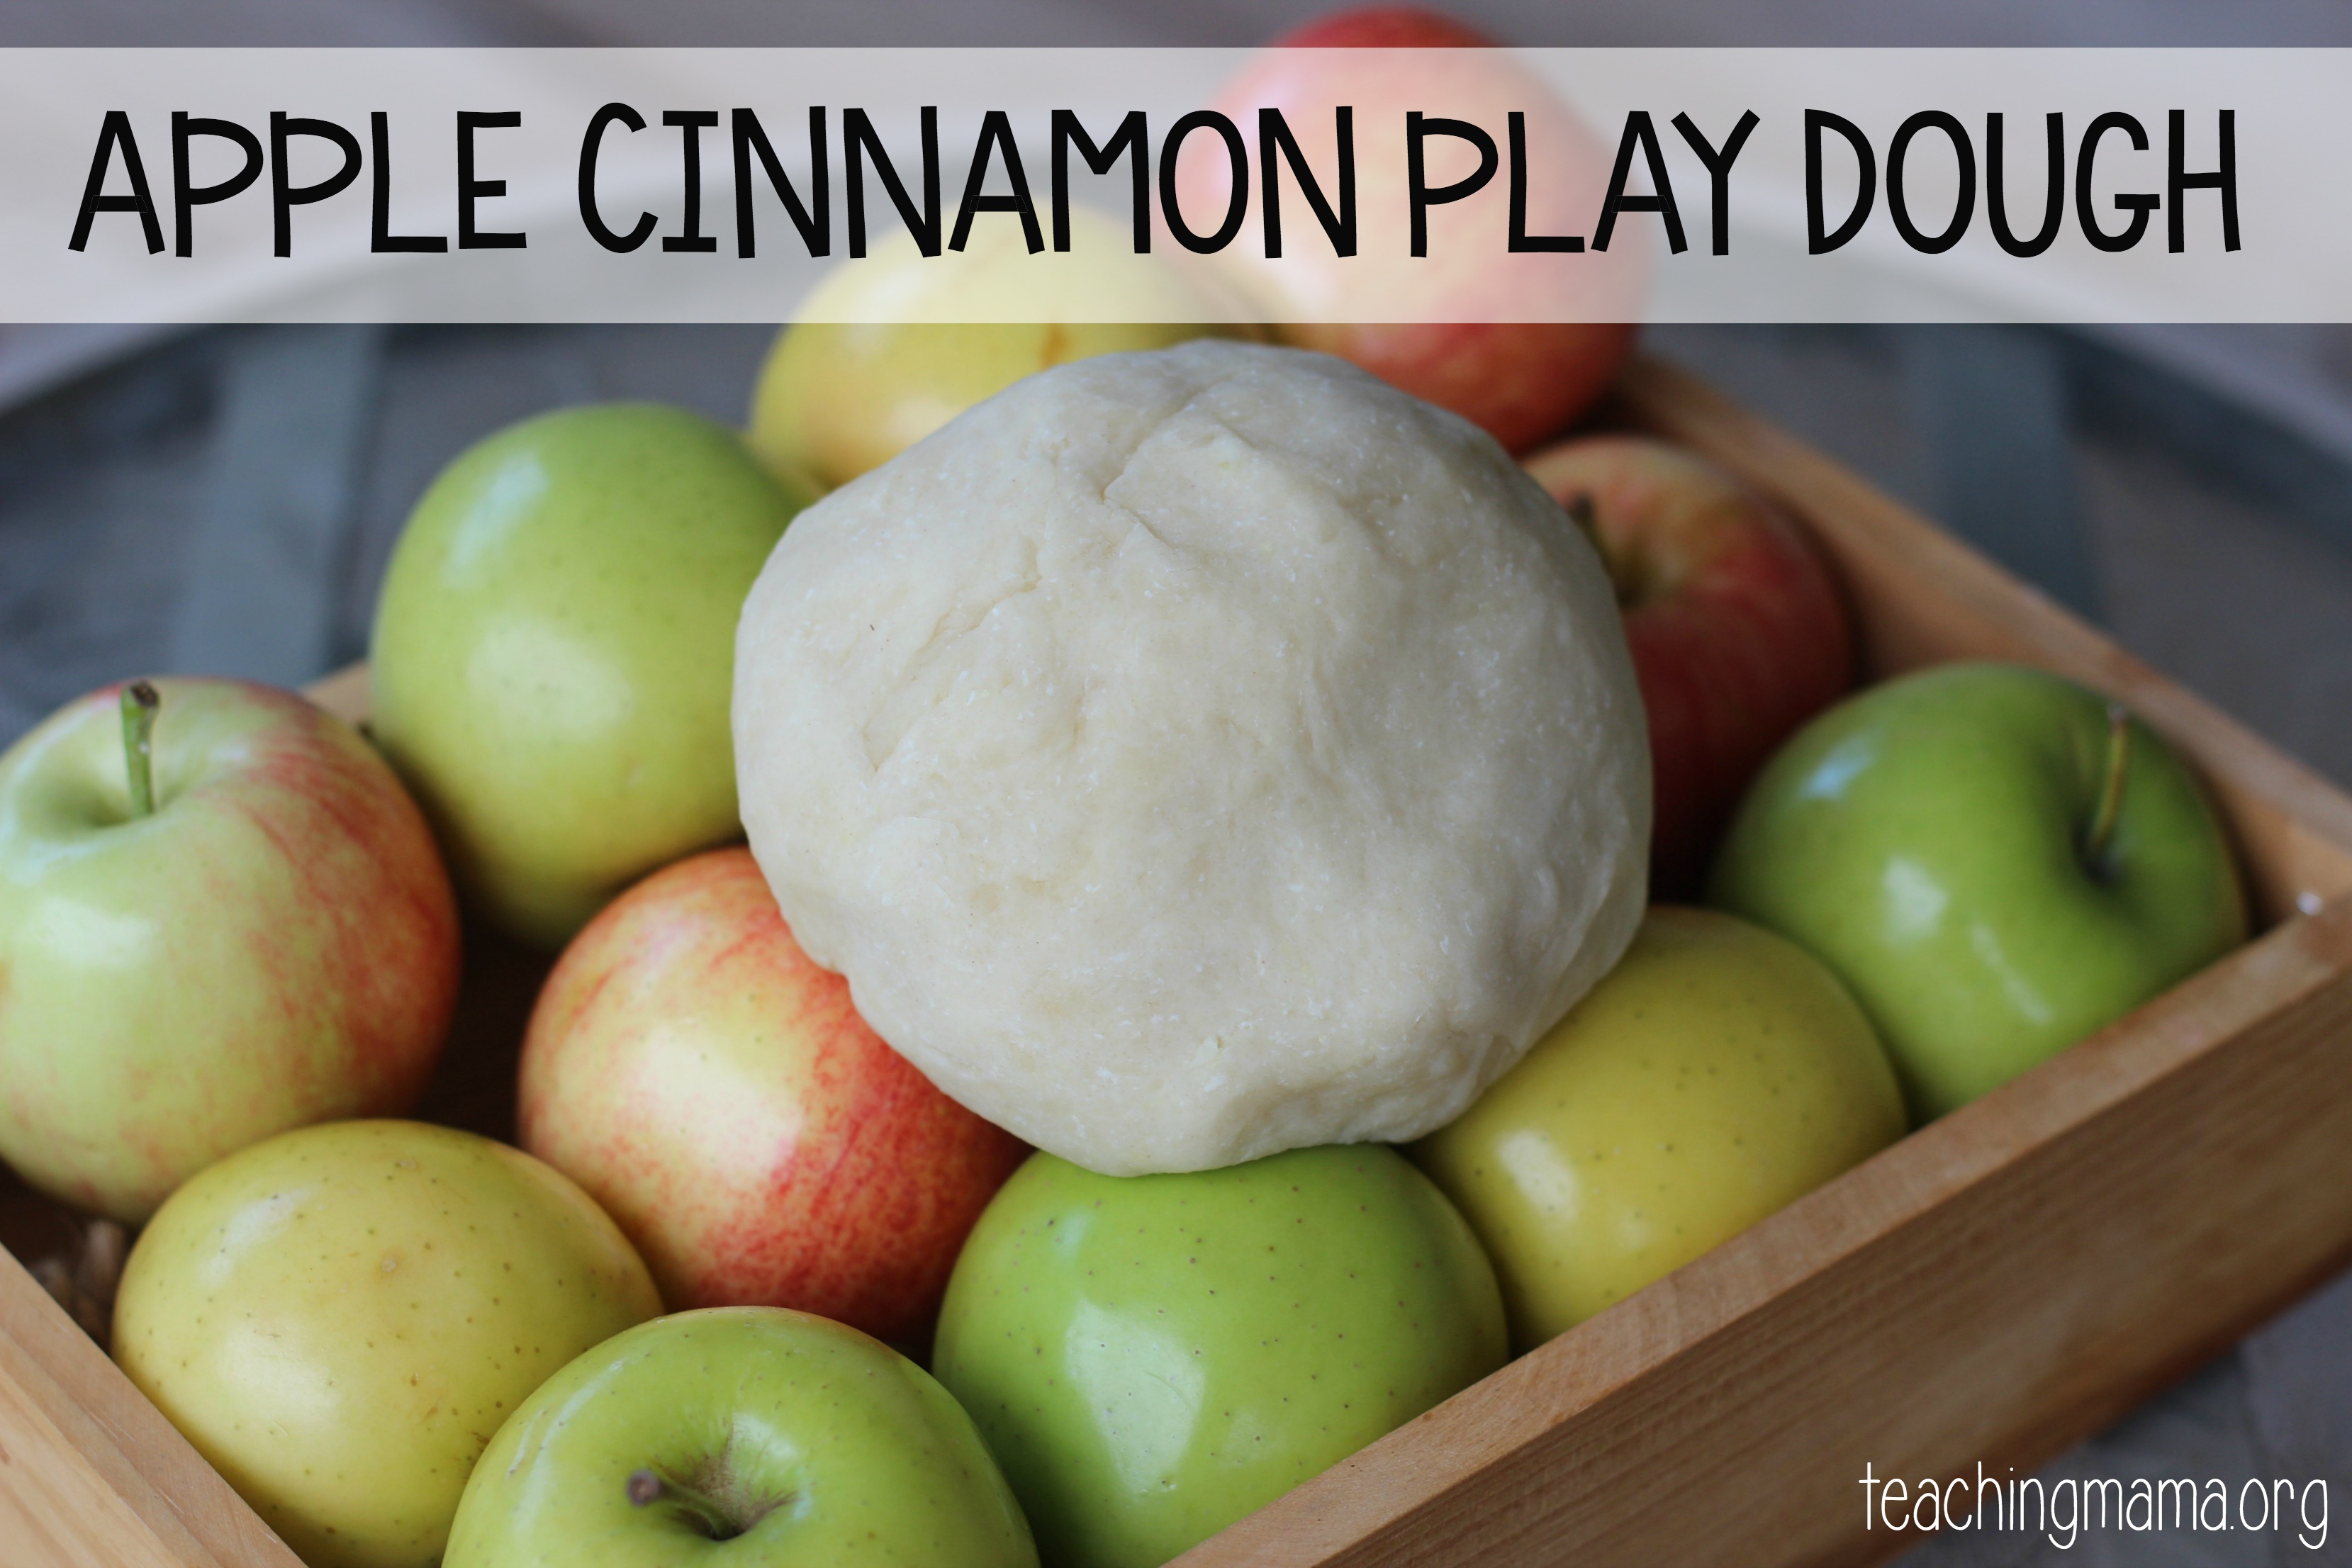 Apple Cinnamon Play Dough